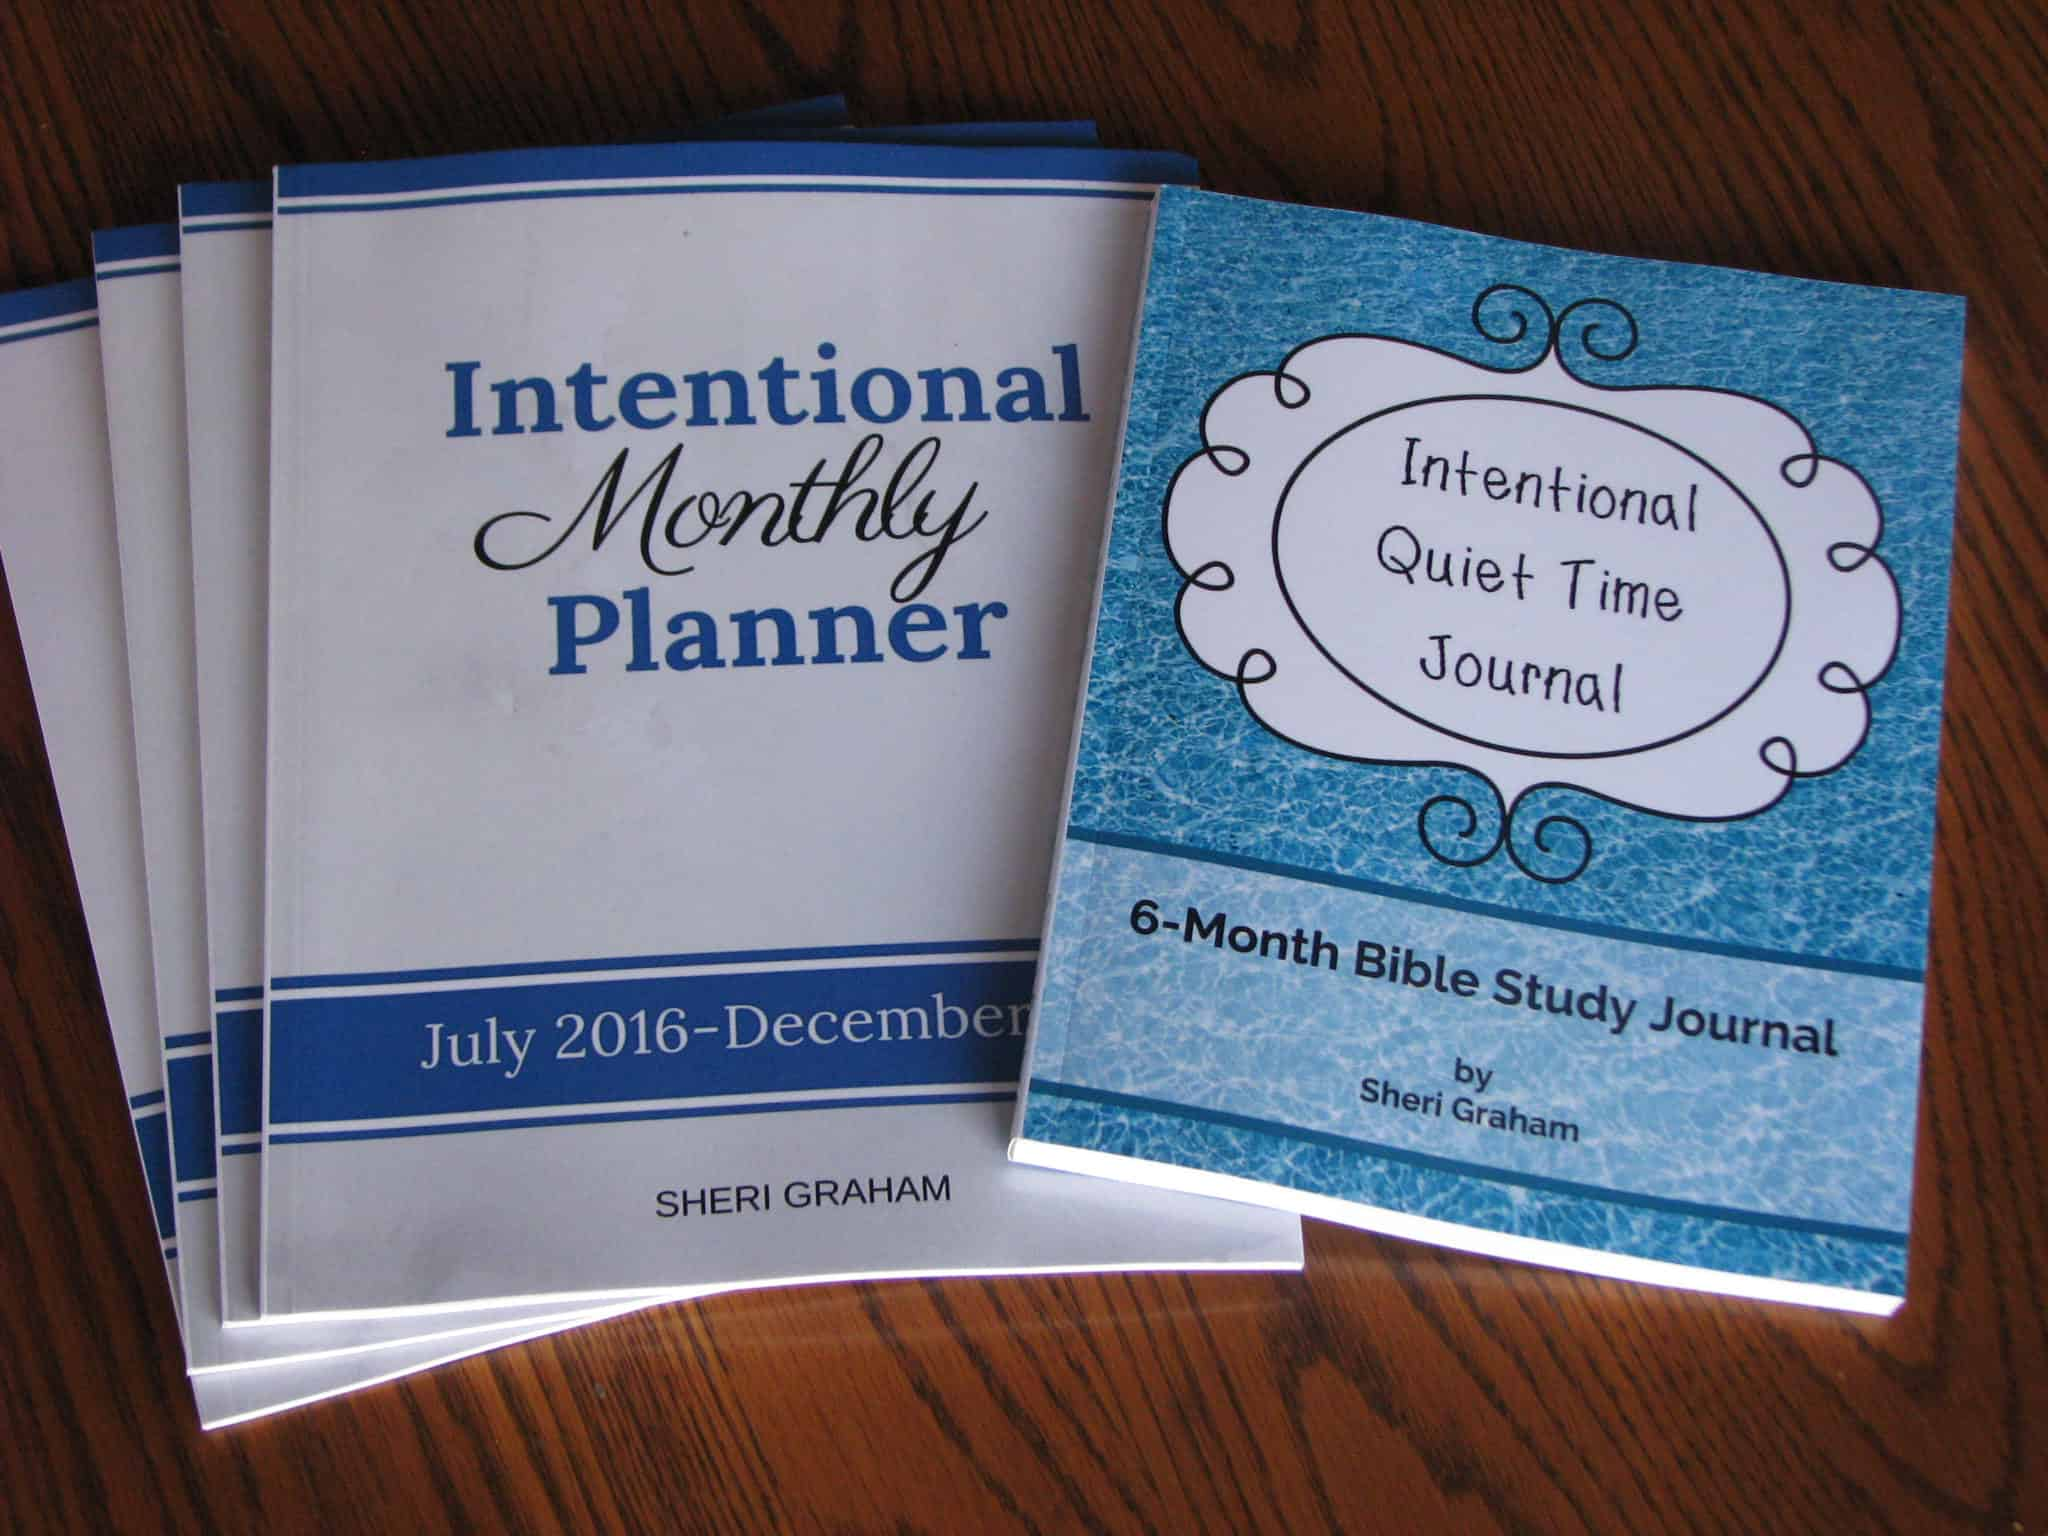 Look what came today + Sneak peak at the Intentional Quiet Time Journal (for boys)